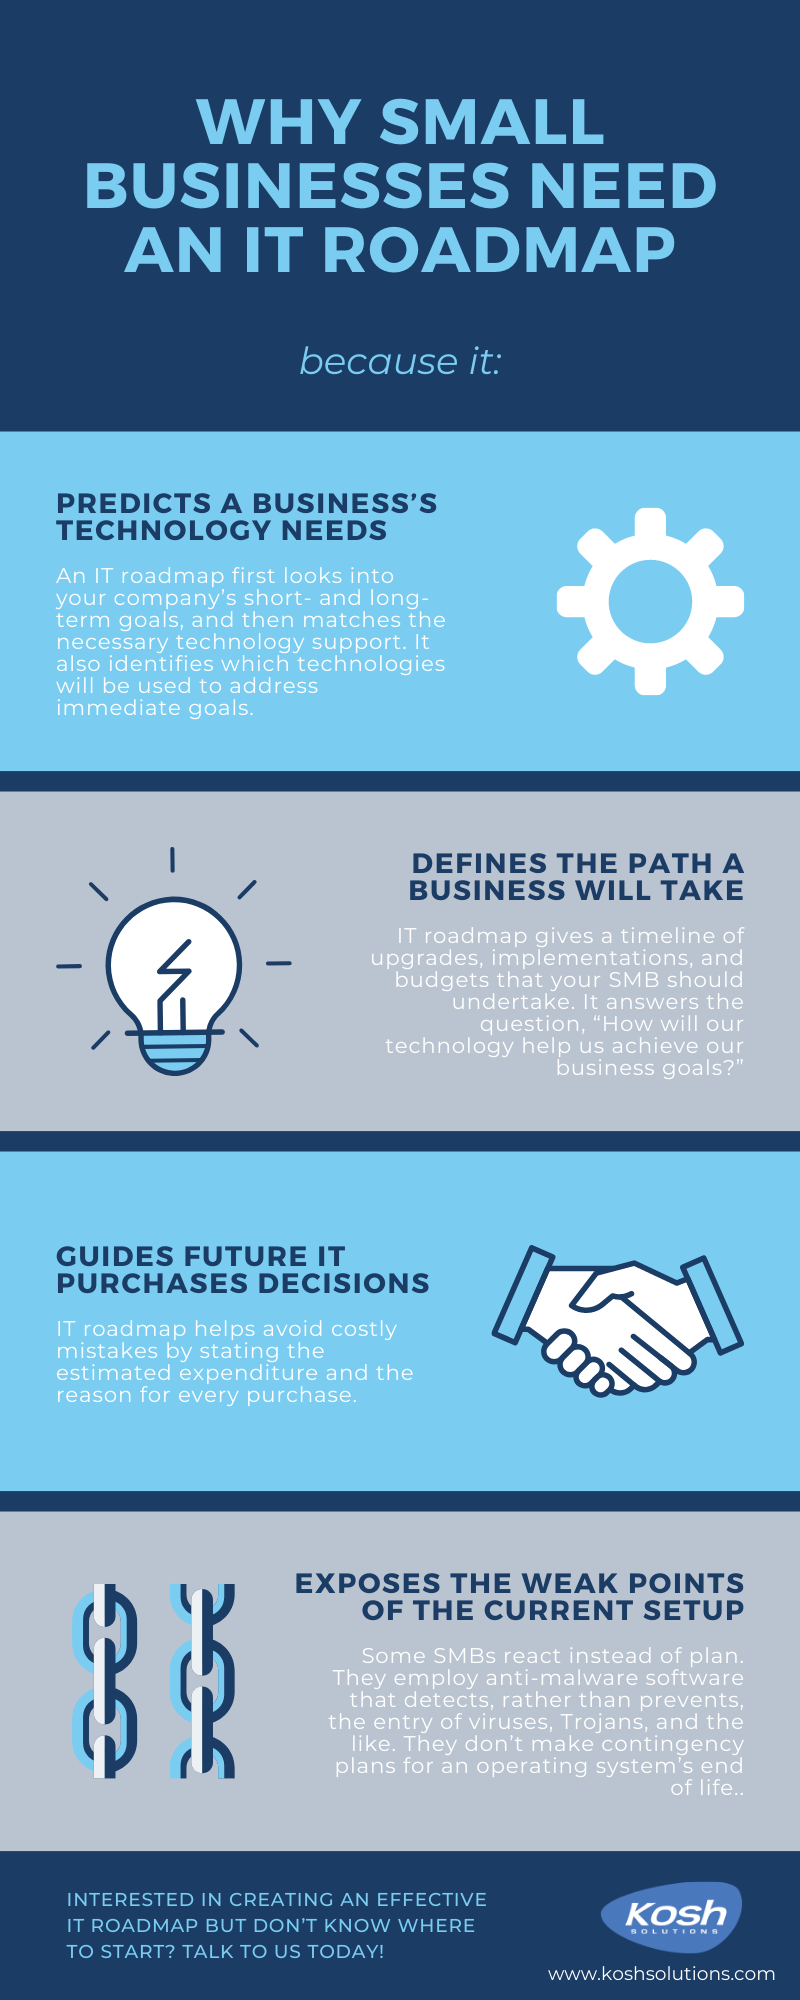 Why SMEs need an IT roadmap